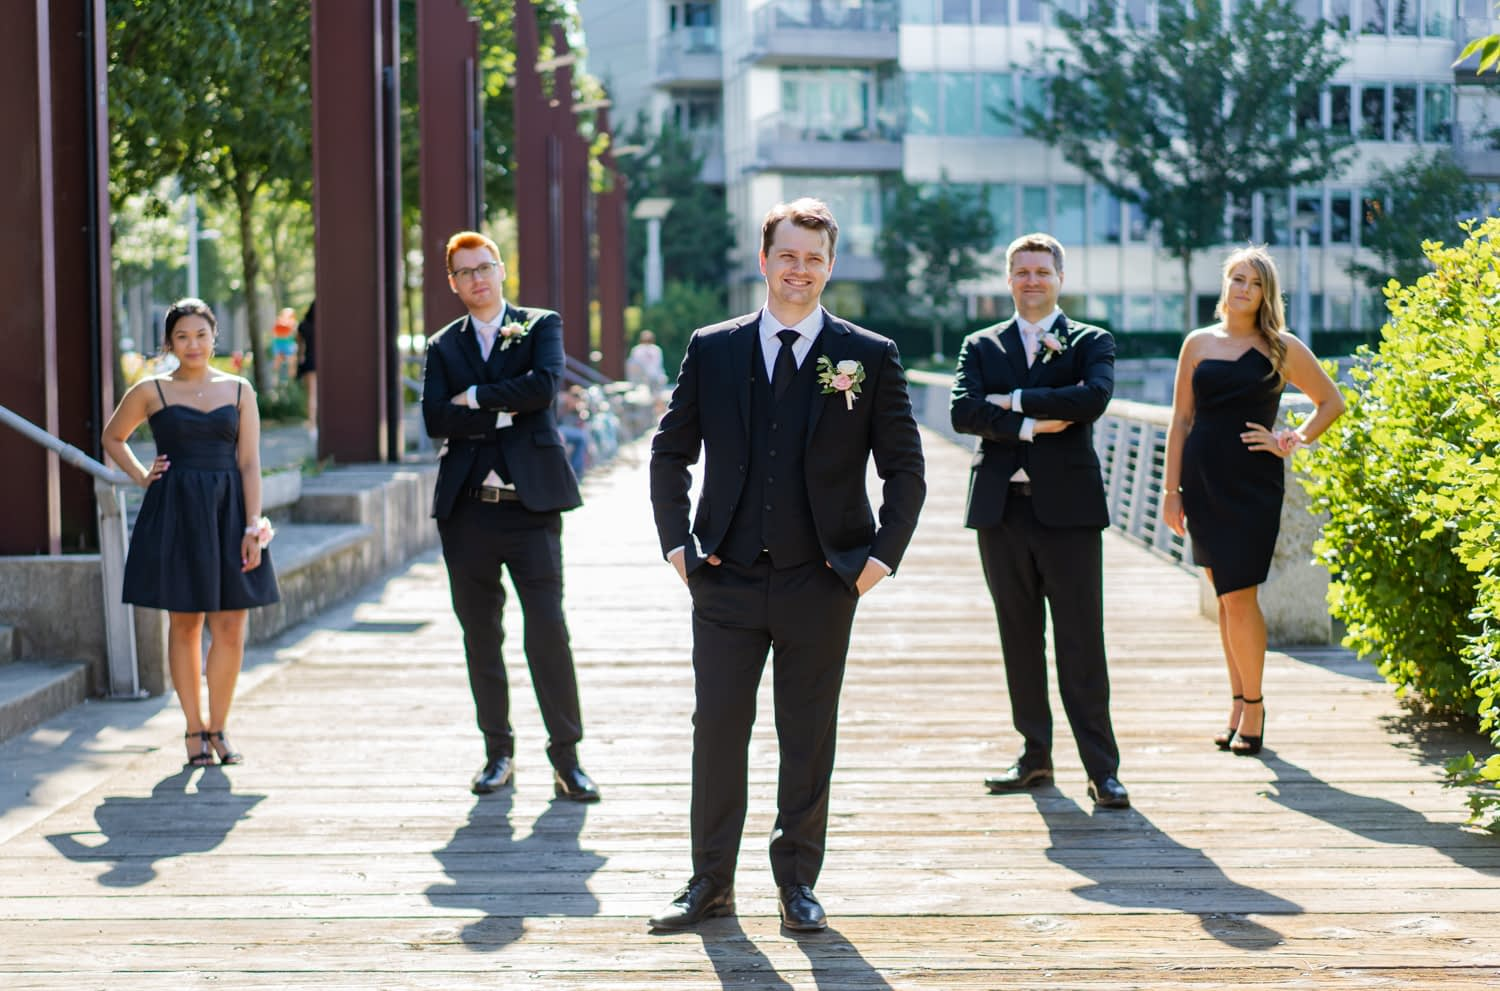 Olympic Village Vancouver Wedding